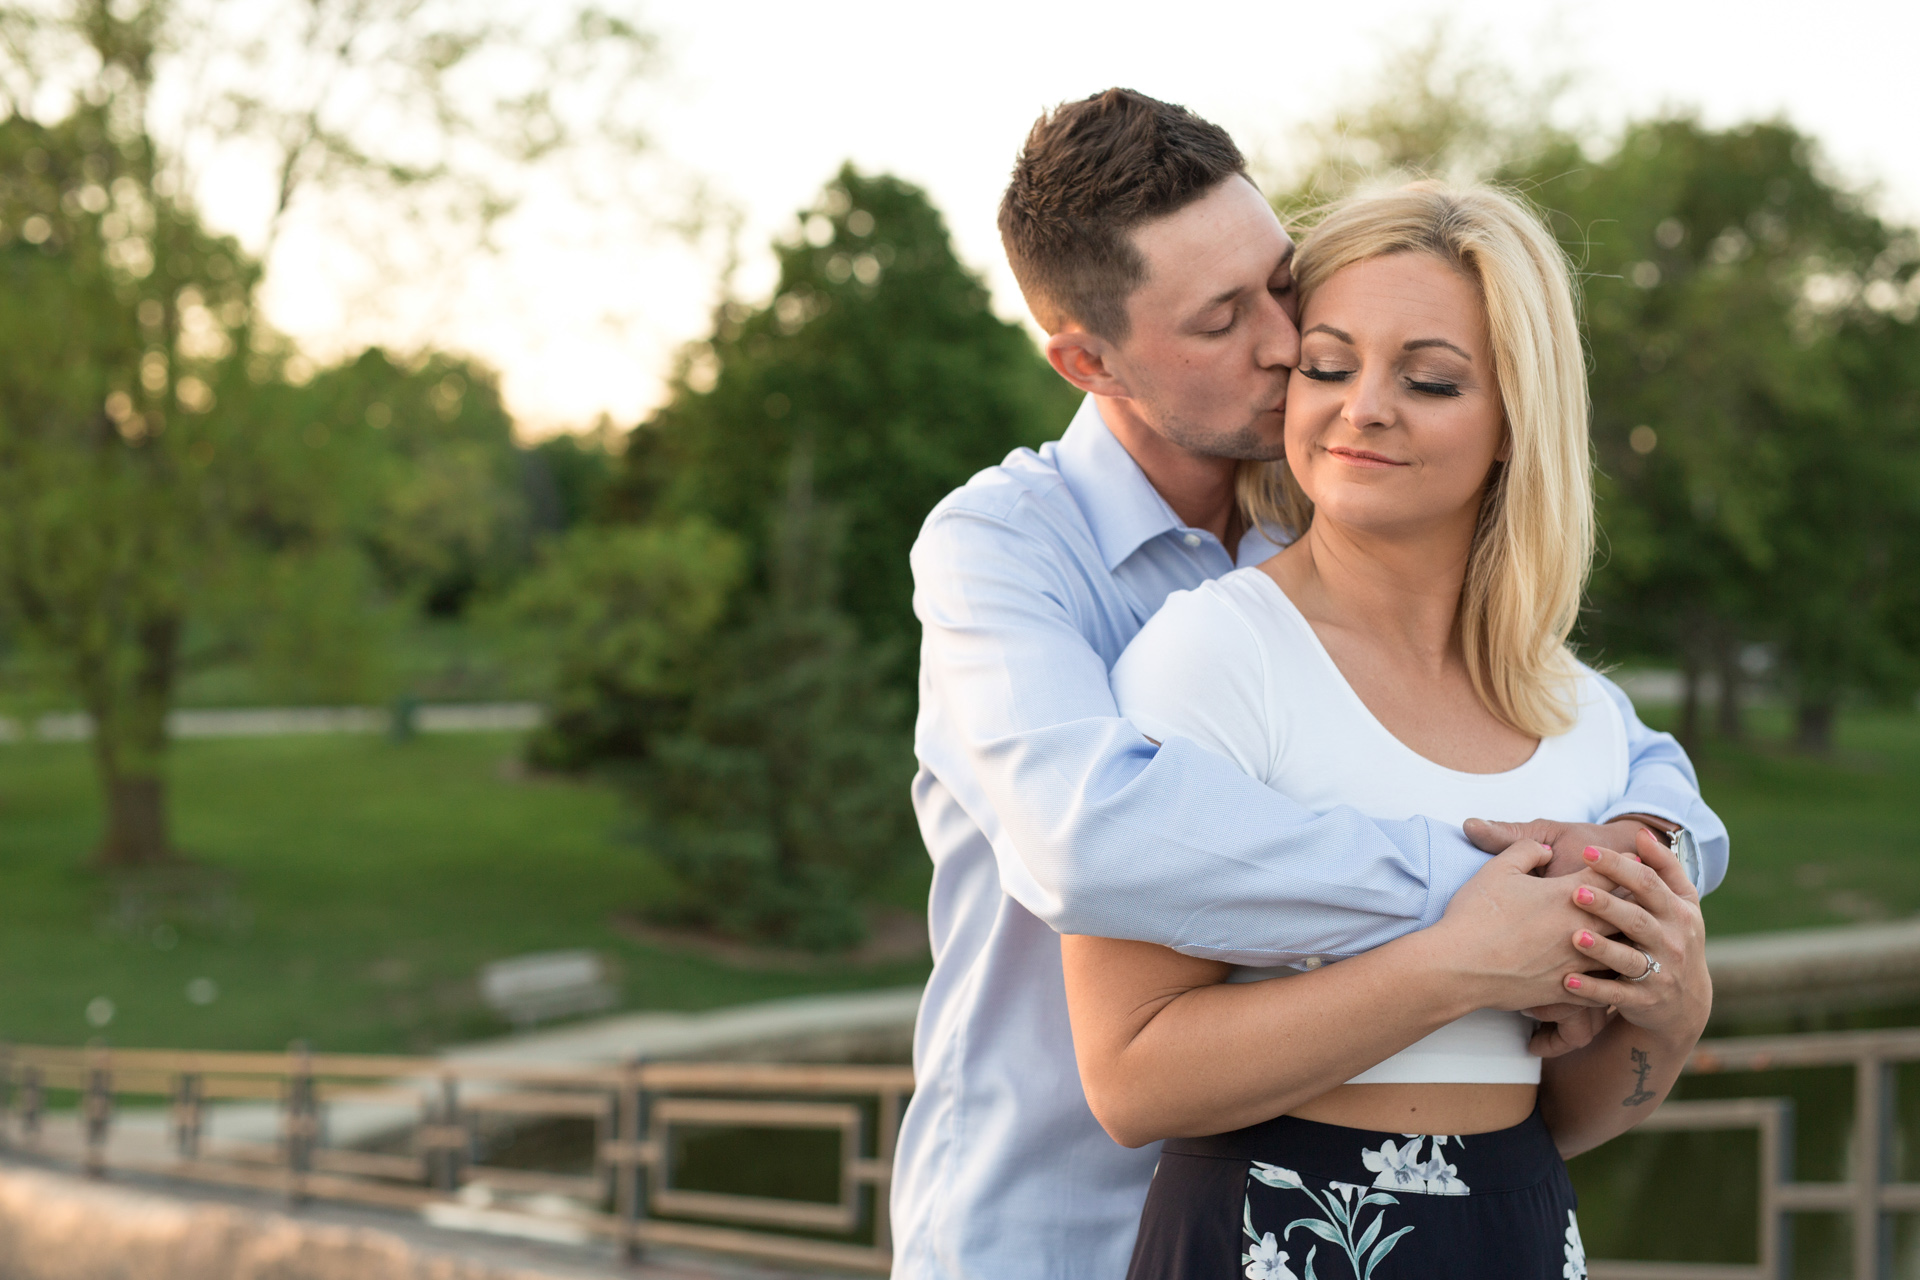 The Faits Peoria Bloomington Normal Central Illinois Unique Wedding Photographers Photographer Engagement Photography Uptown Normal Engagement Volleyball engagement-23.jpg